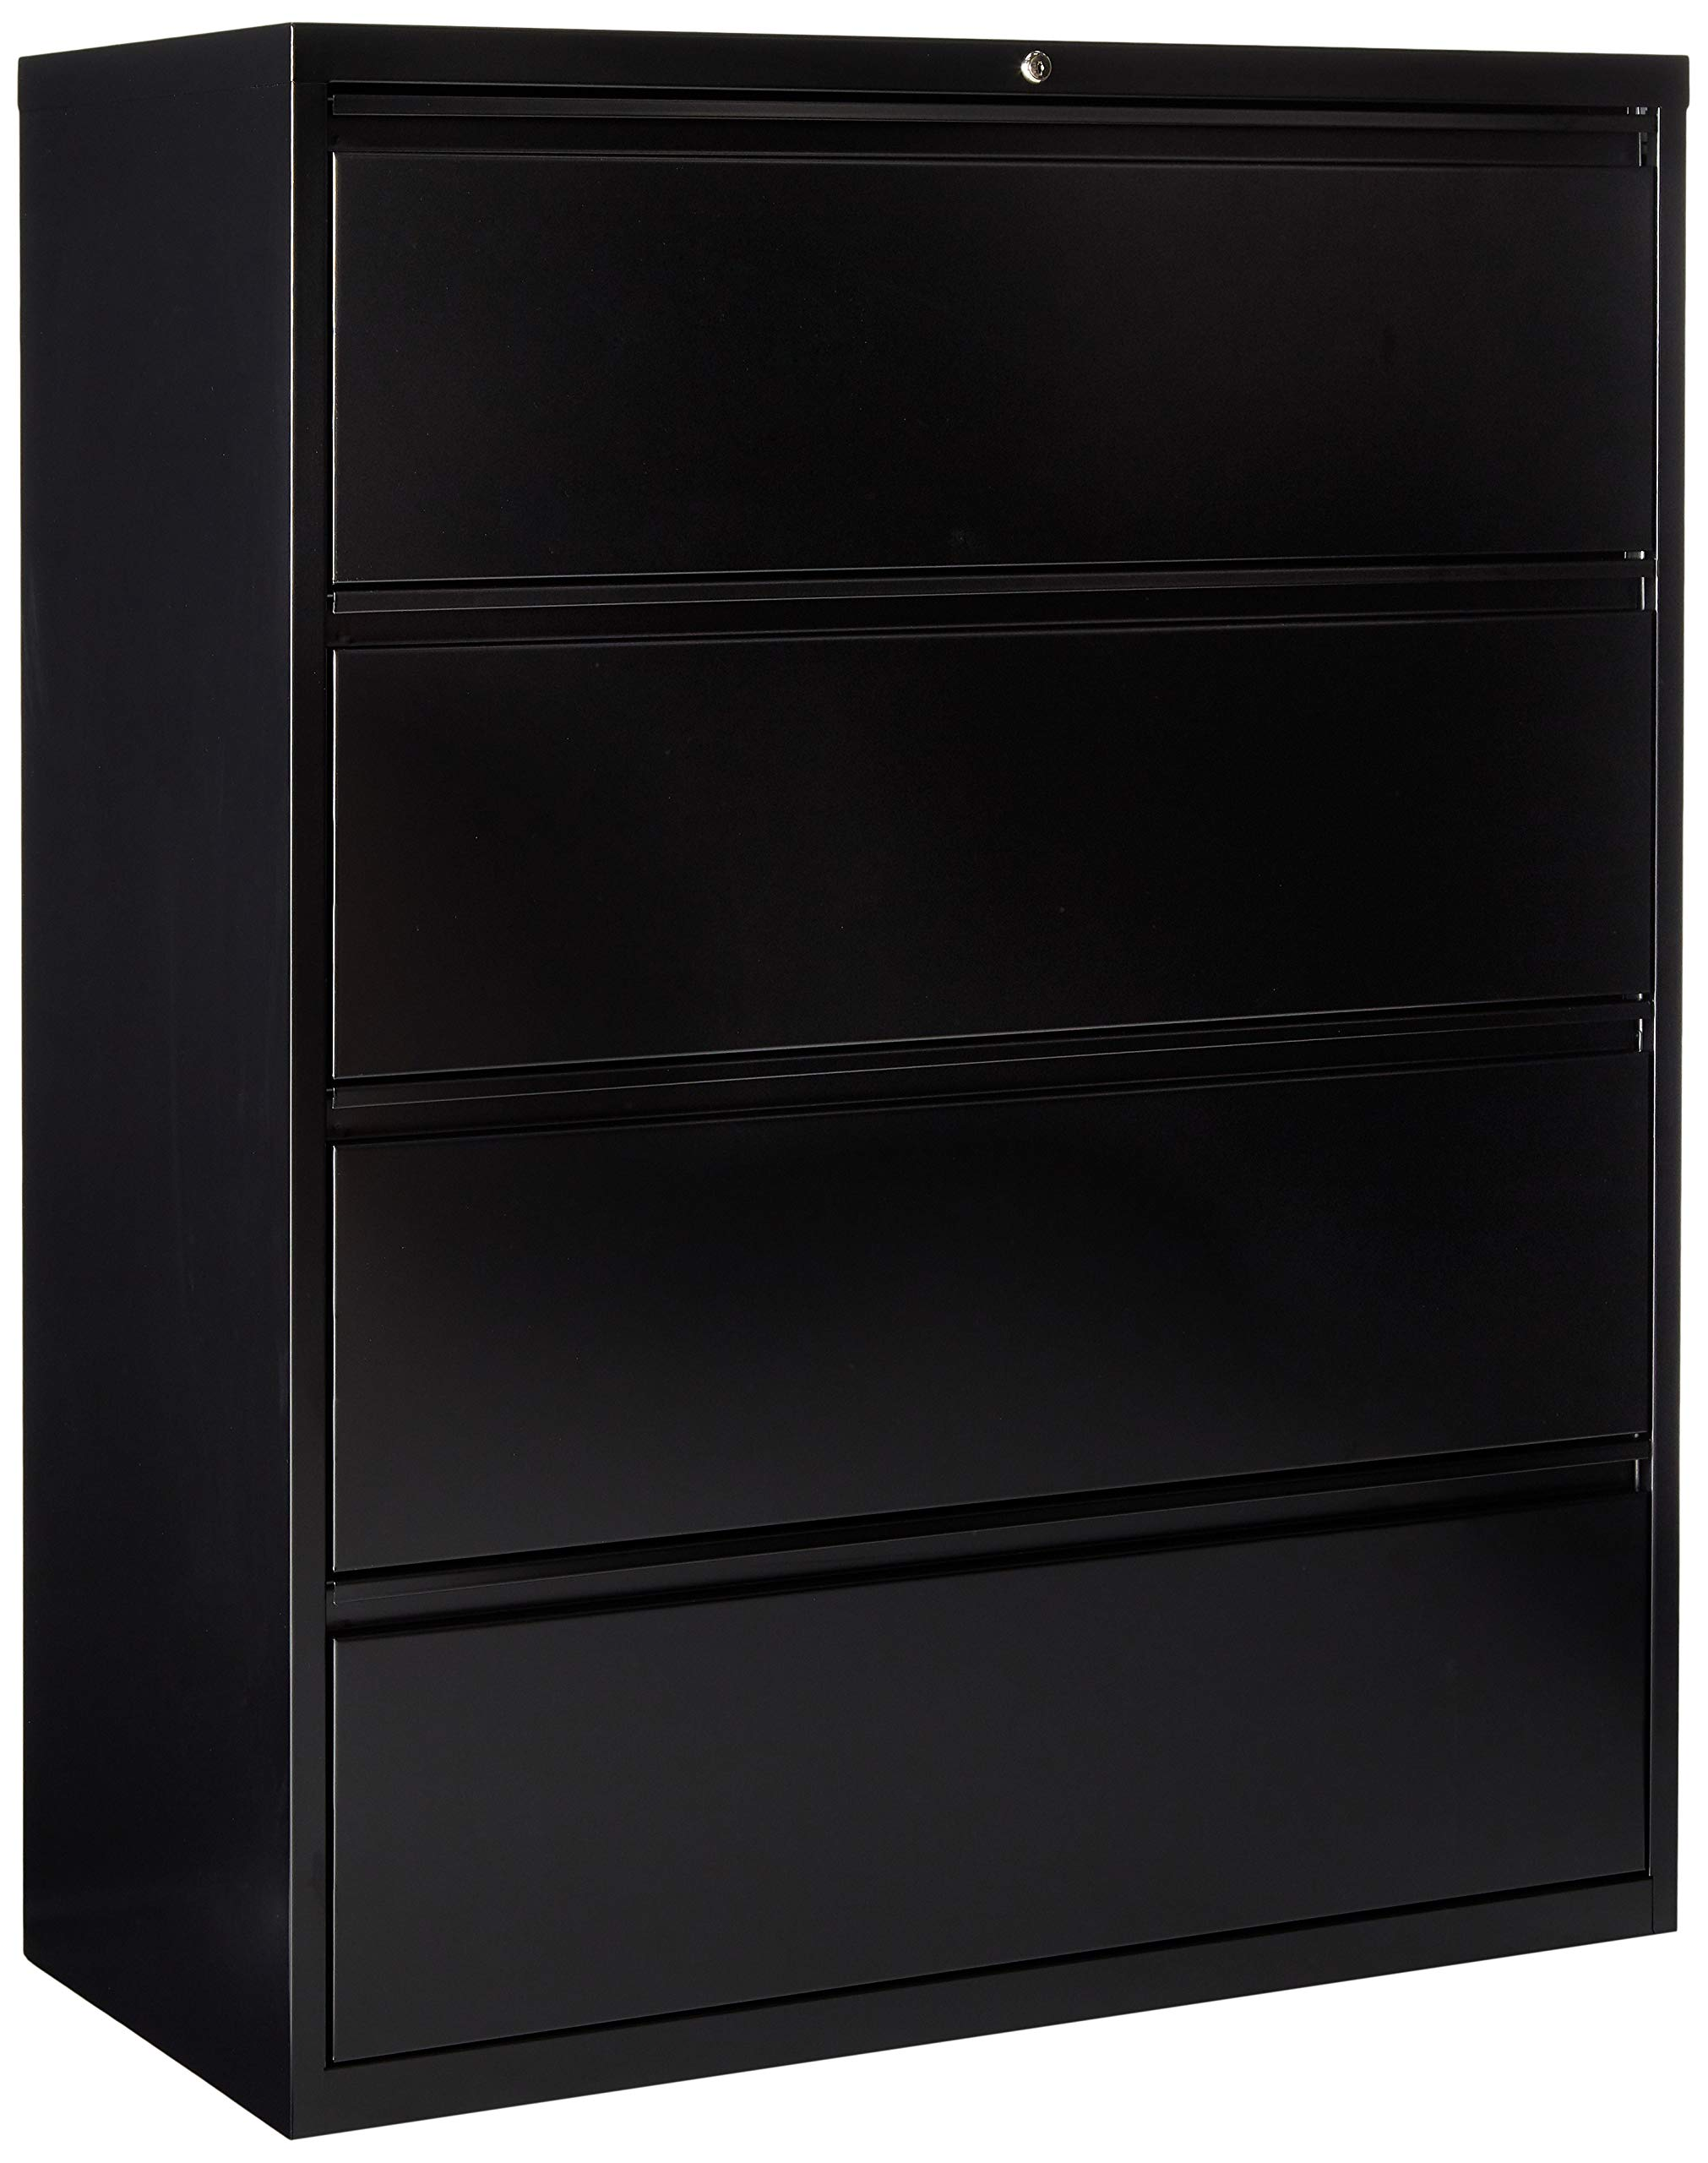 Lorell 4-Drawer Lateral File, 42 by 18-5/8 by 52-1/2-Inch, Black by Lorell